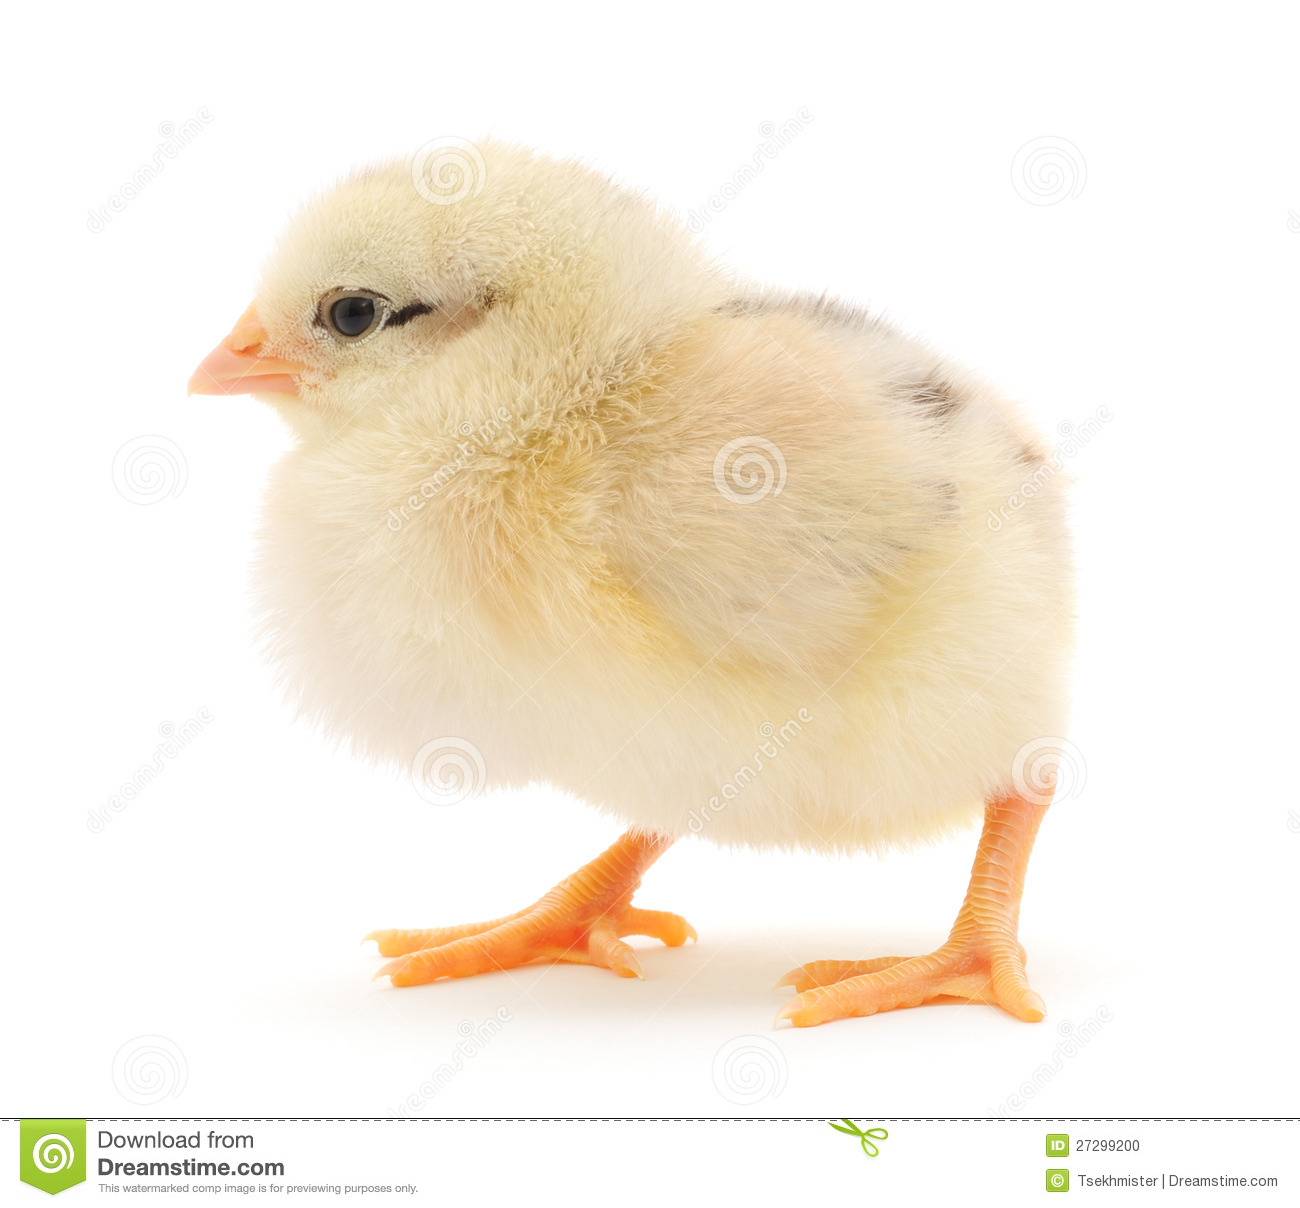 Small Chicken Stock Photo - Image: 27299200